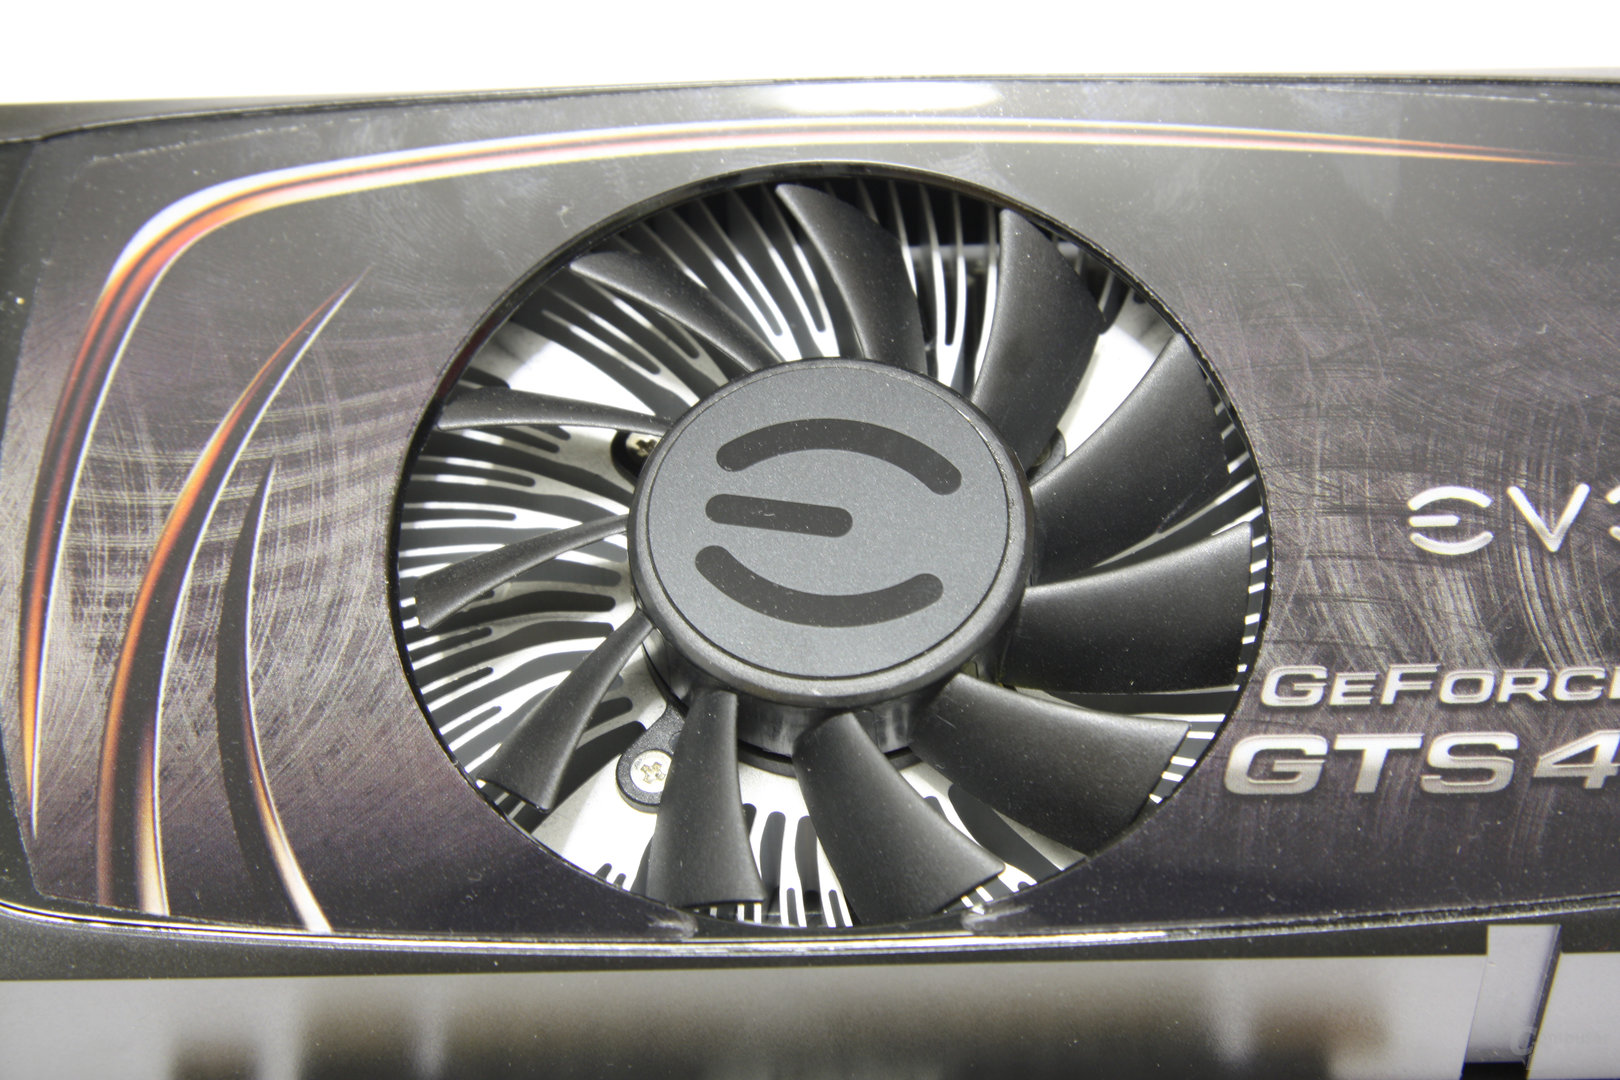 GeForce GTS 450 FTW Lüfter